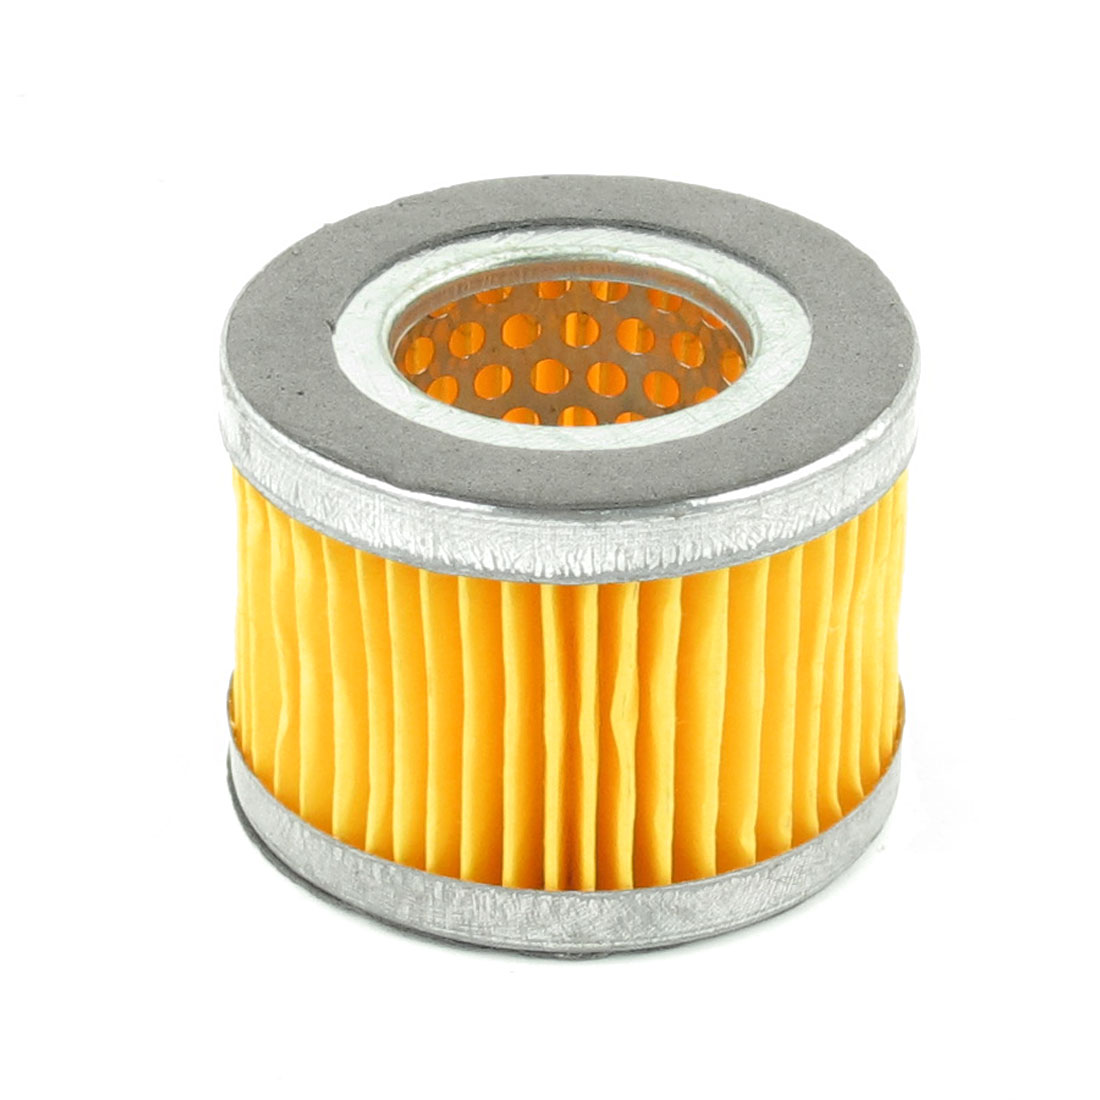 Yellow Svlier Tone Perforating Inside Air Column Shape Muffler Filter